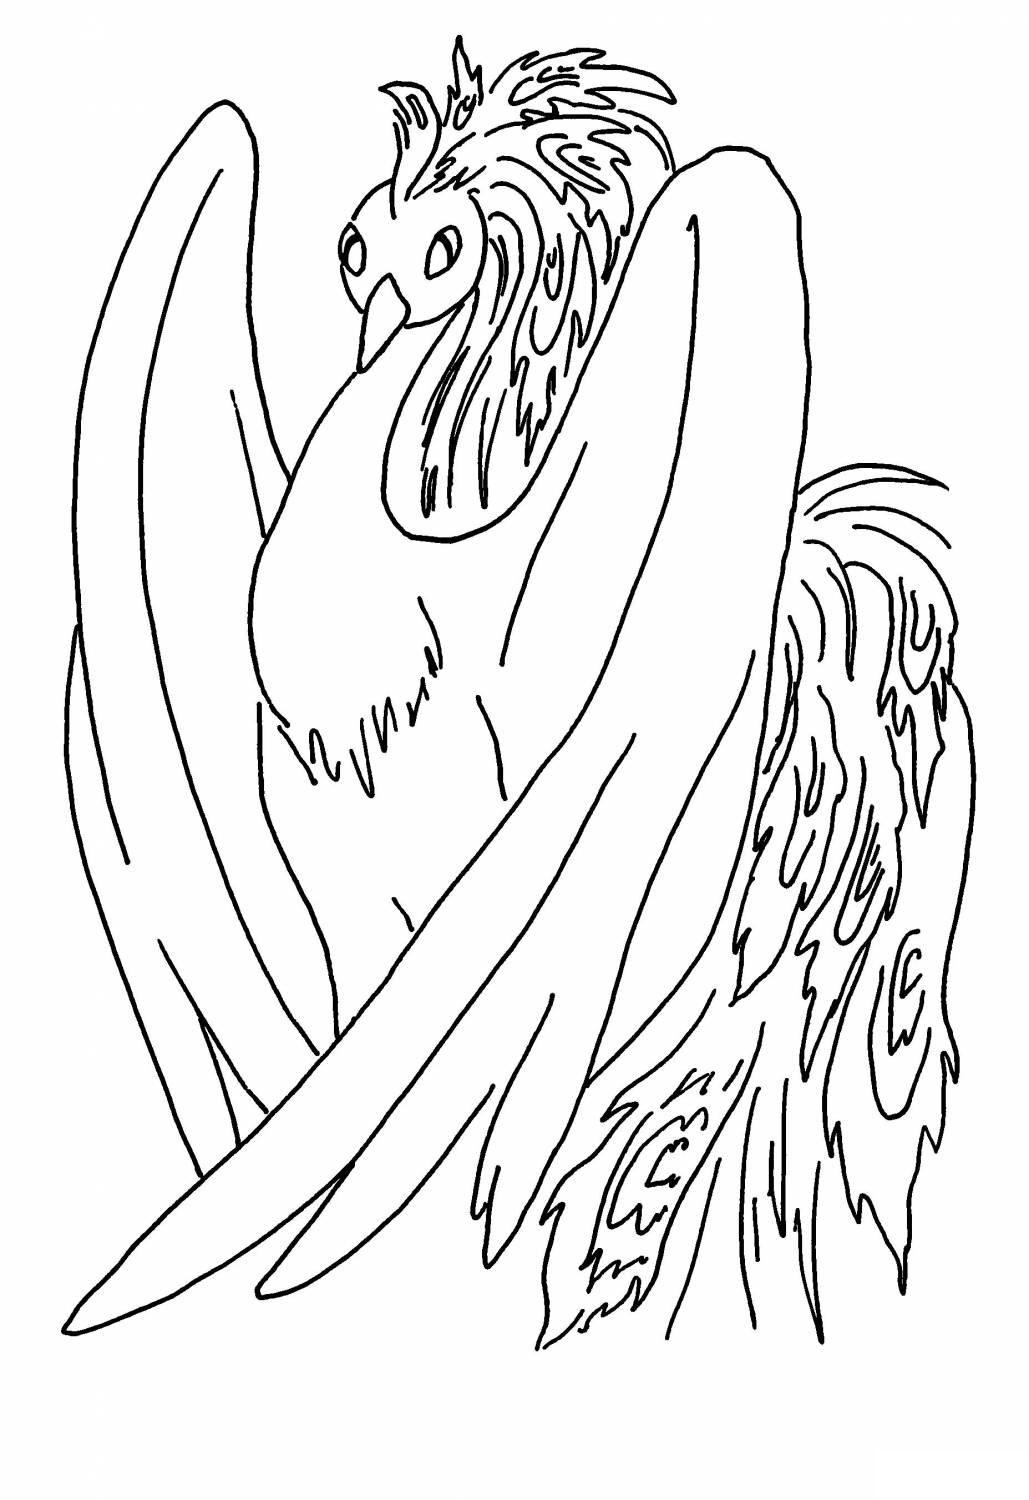 Coloring coloring pages the fairy tale The Little Humpbacked Horse Sunbird, humpback tale horse coloring pages